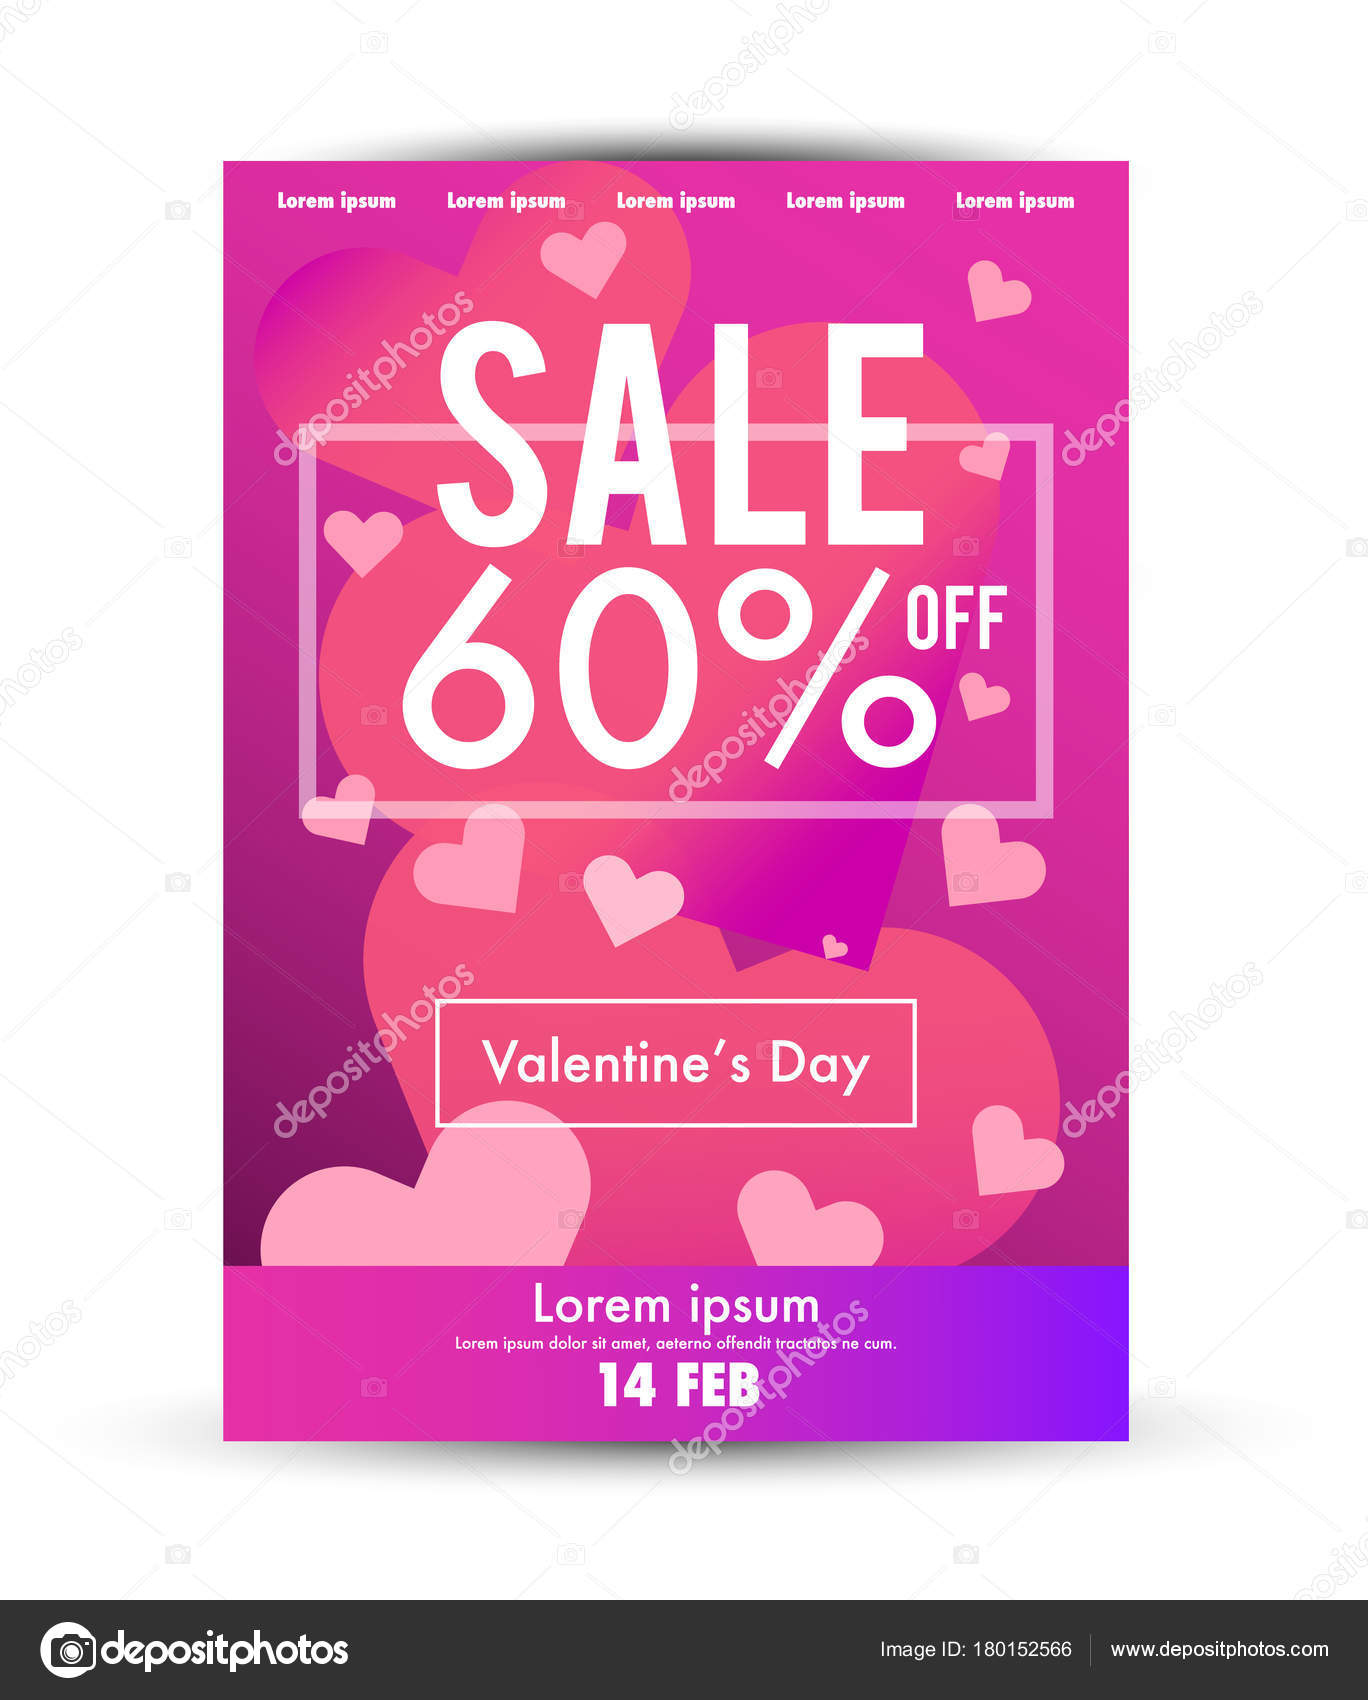 Valentineu0027s Day Sale Poster Template. U2014 Stock Vector  For Sale Poster Template